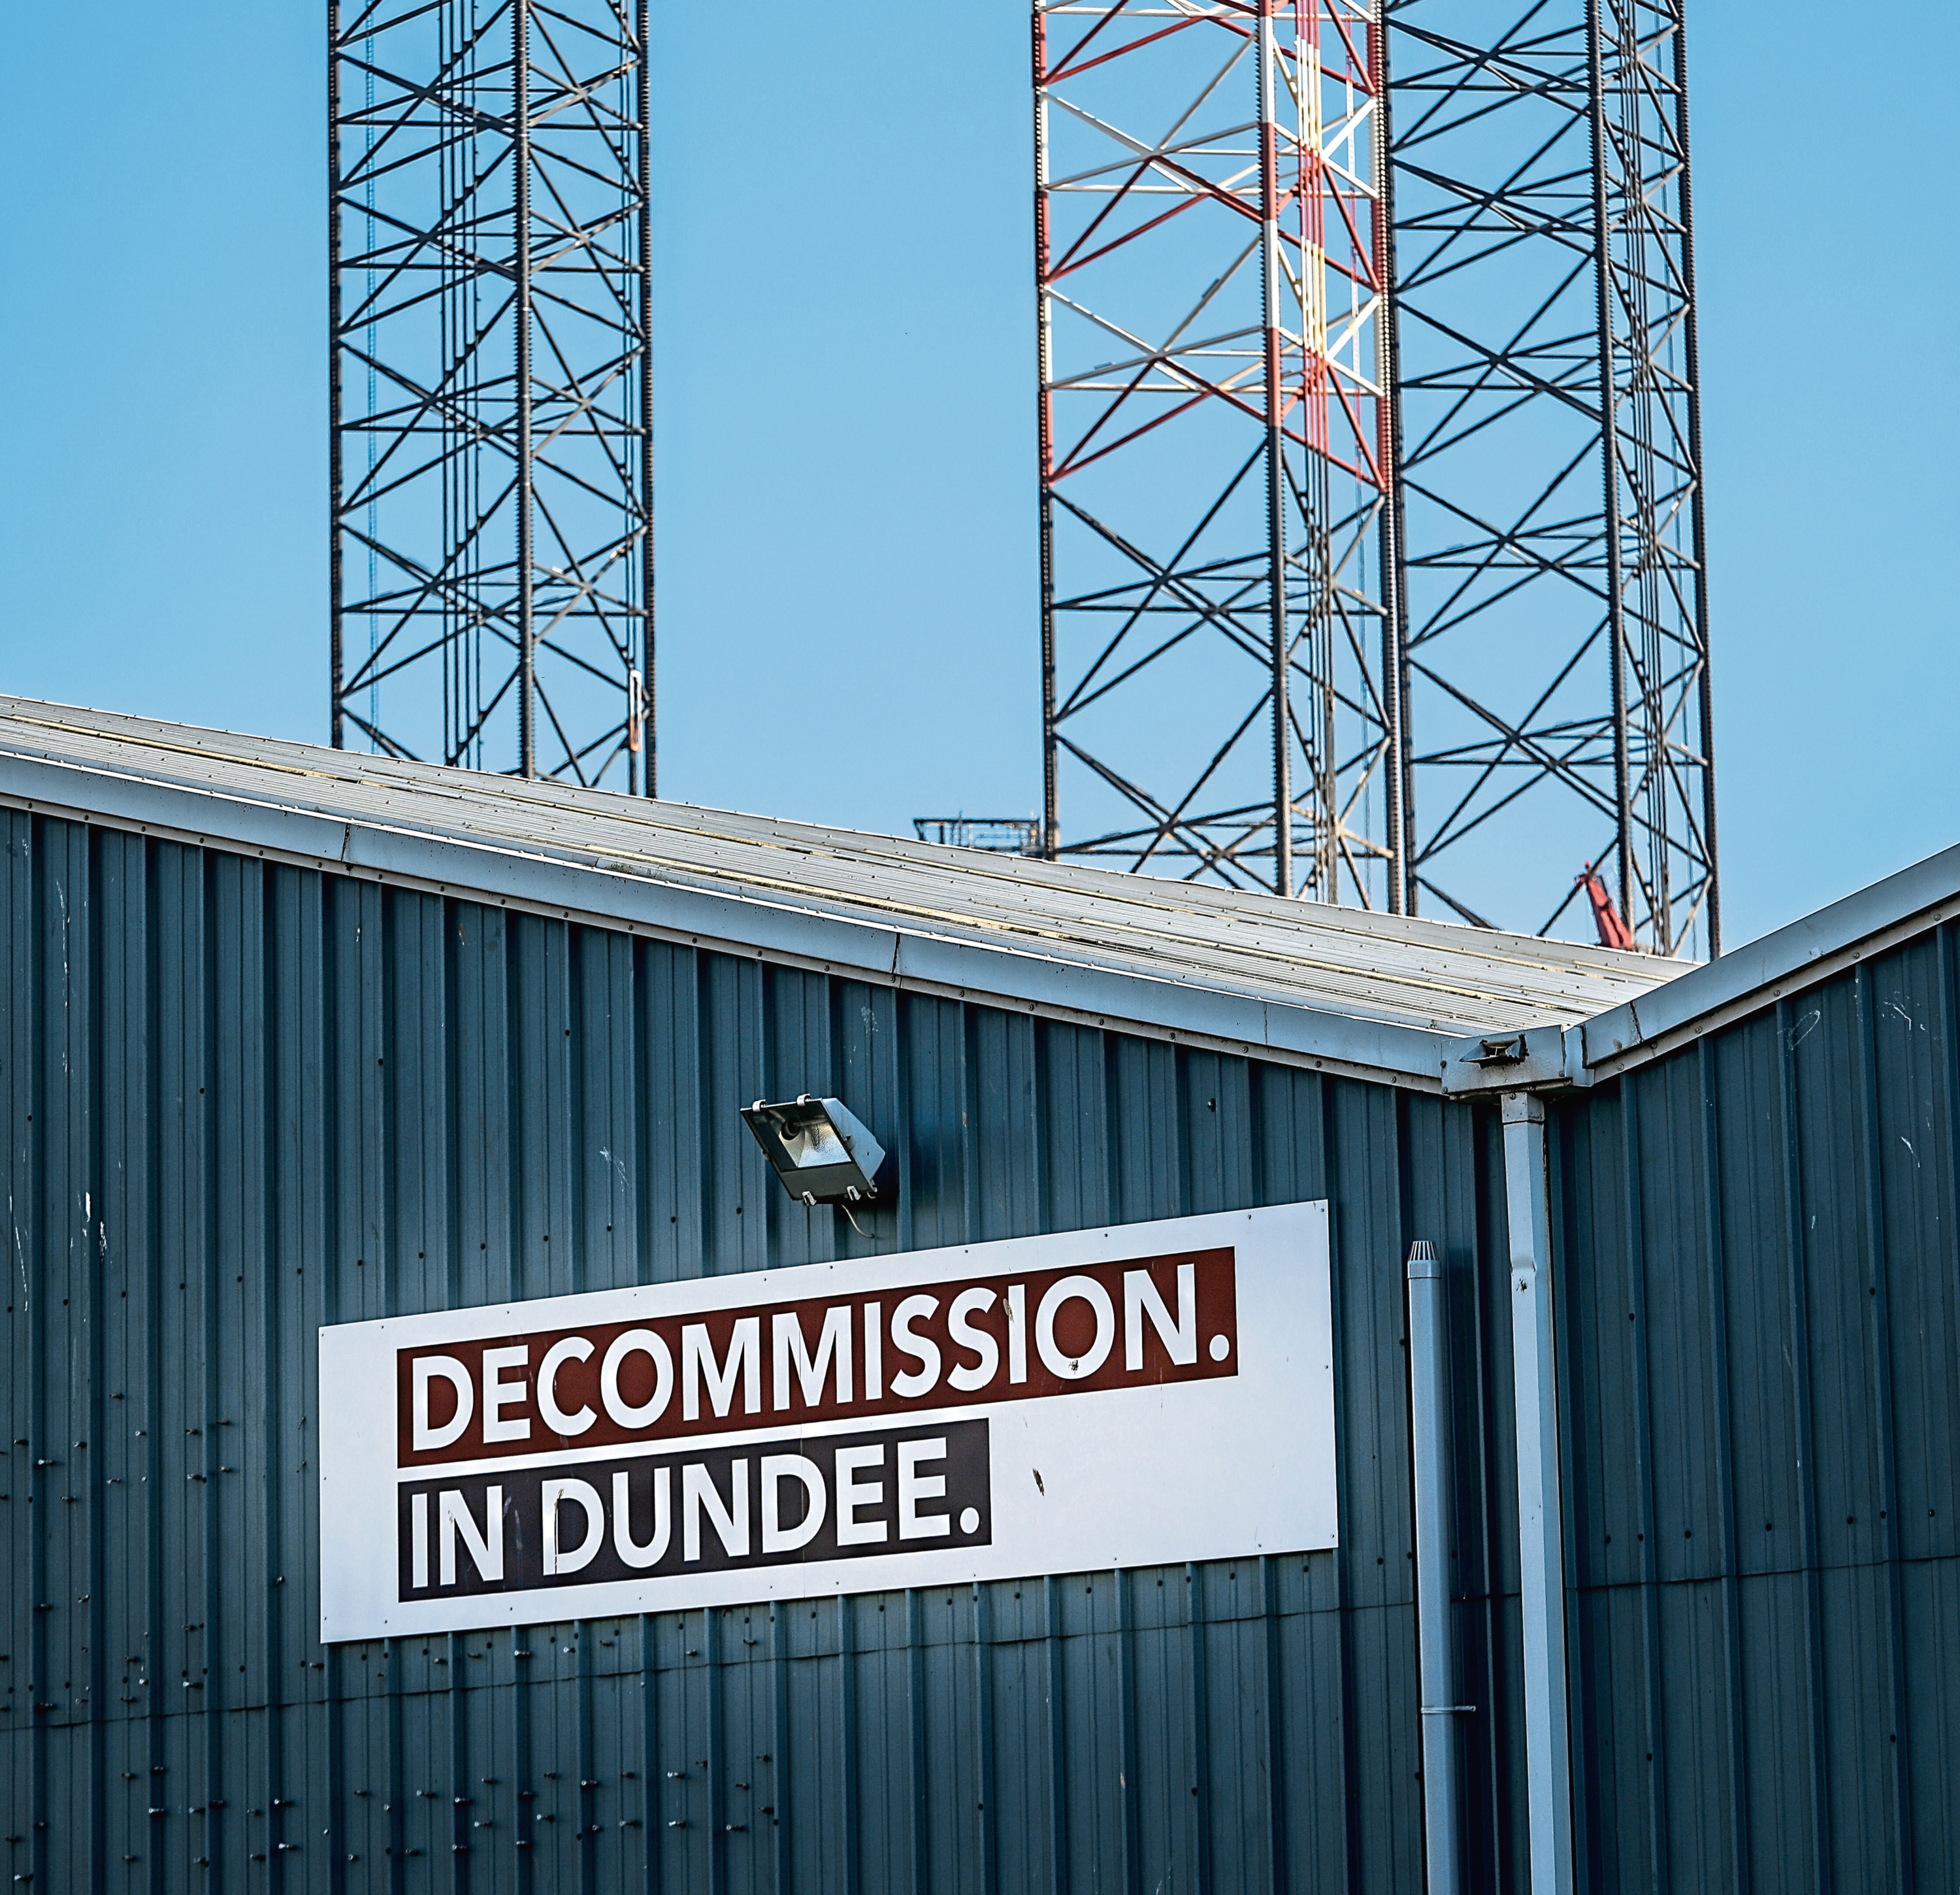 Decommission Dundee